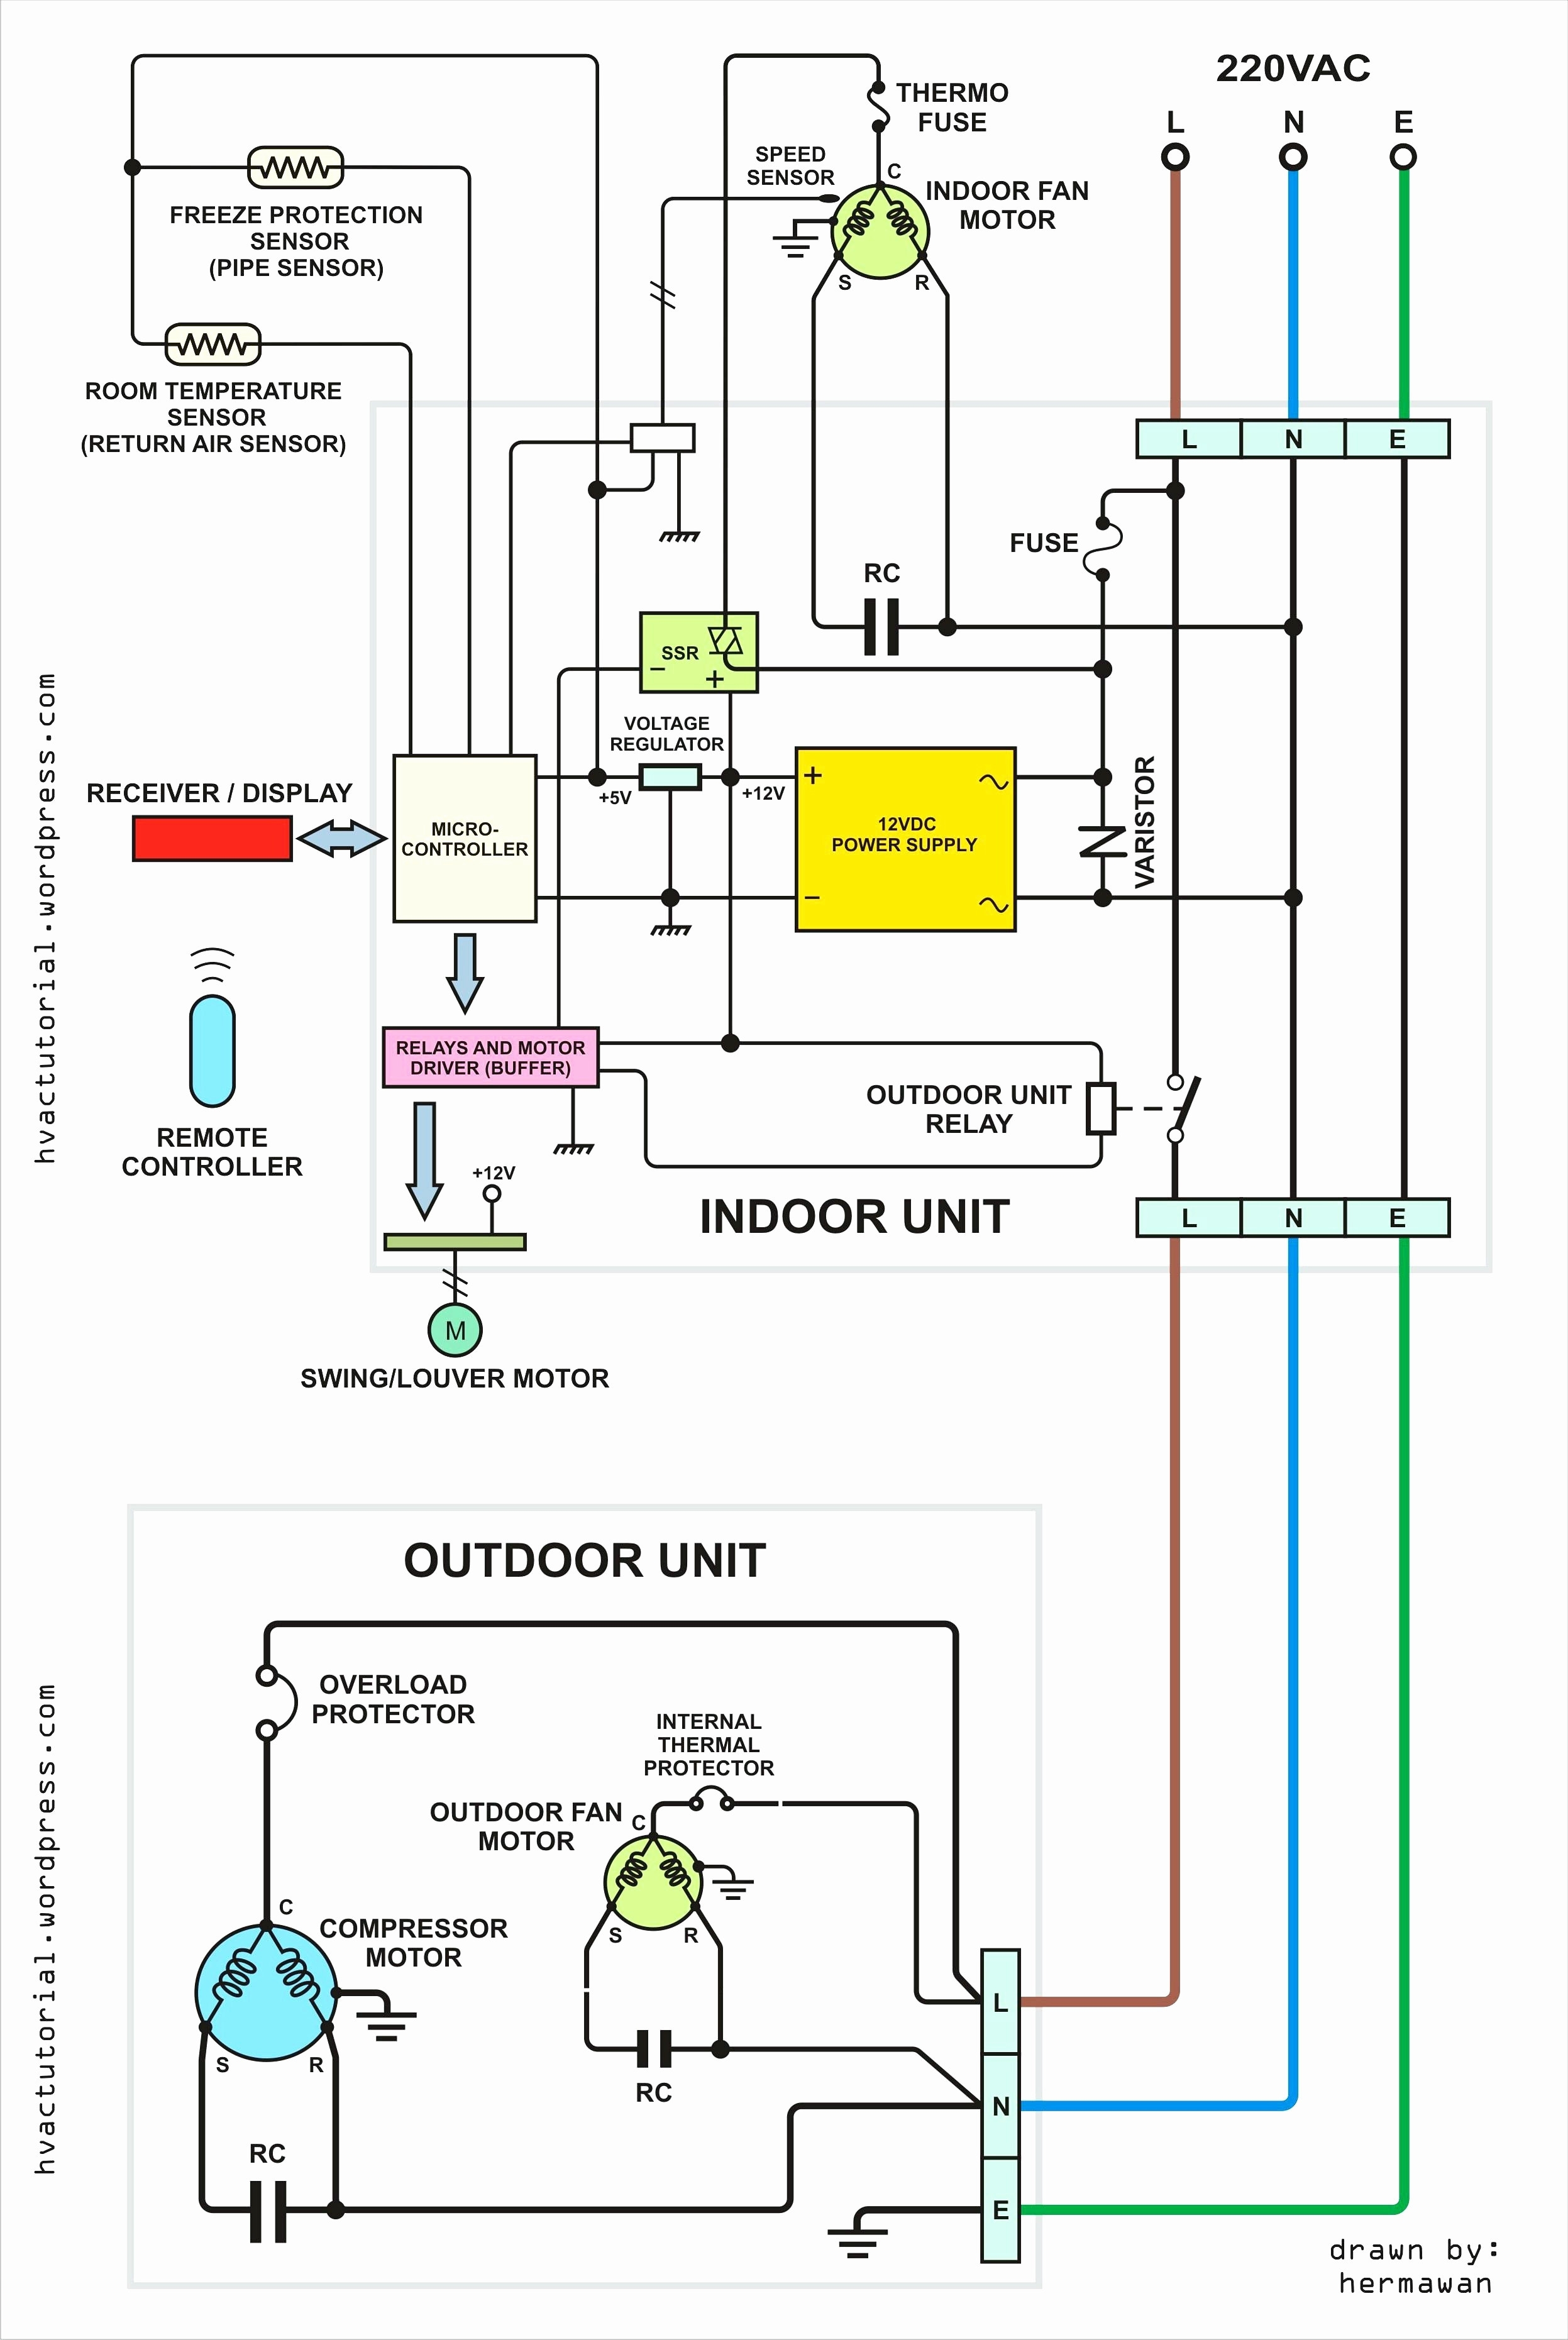 electrical wiring diagram software open source Collection-Wiring Diagram Conventions Best Electrical Wiring Diagram software Open source Image 10-t